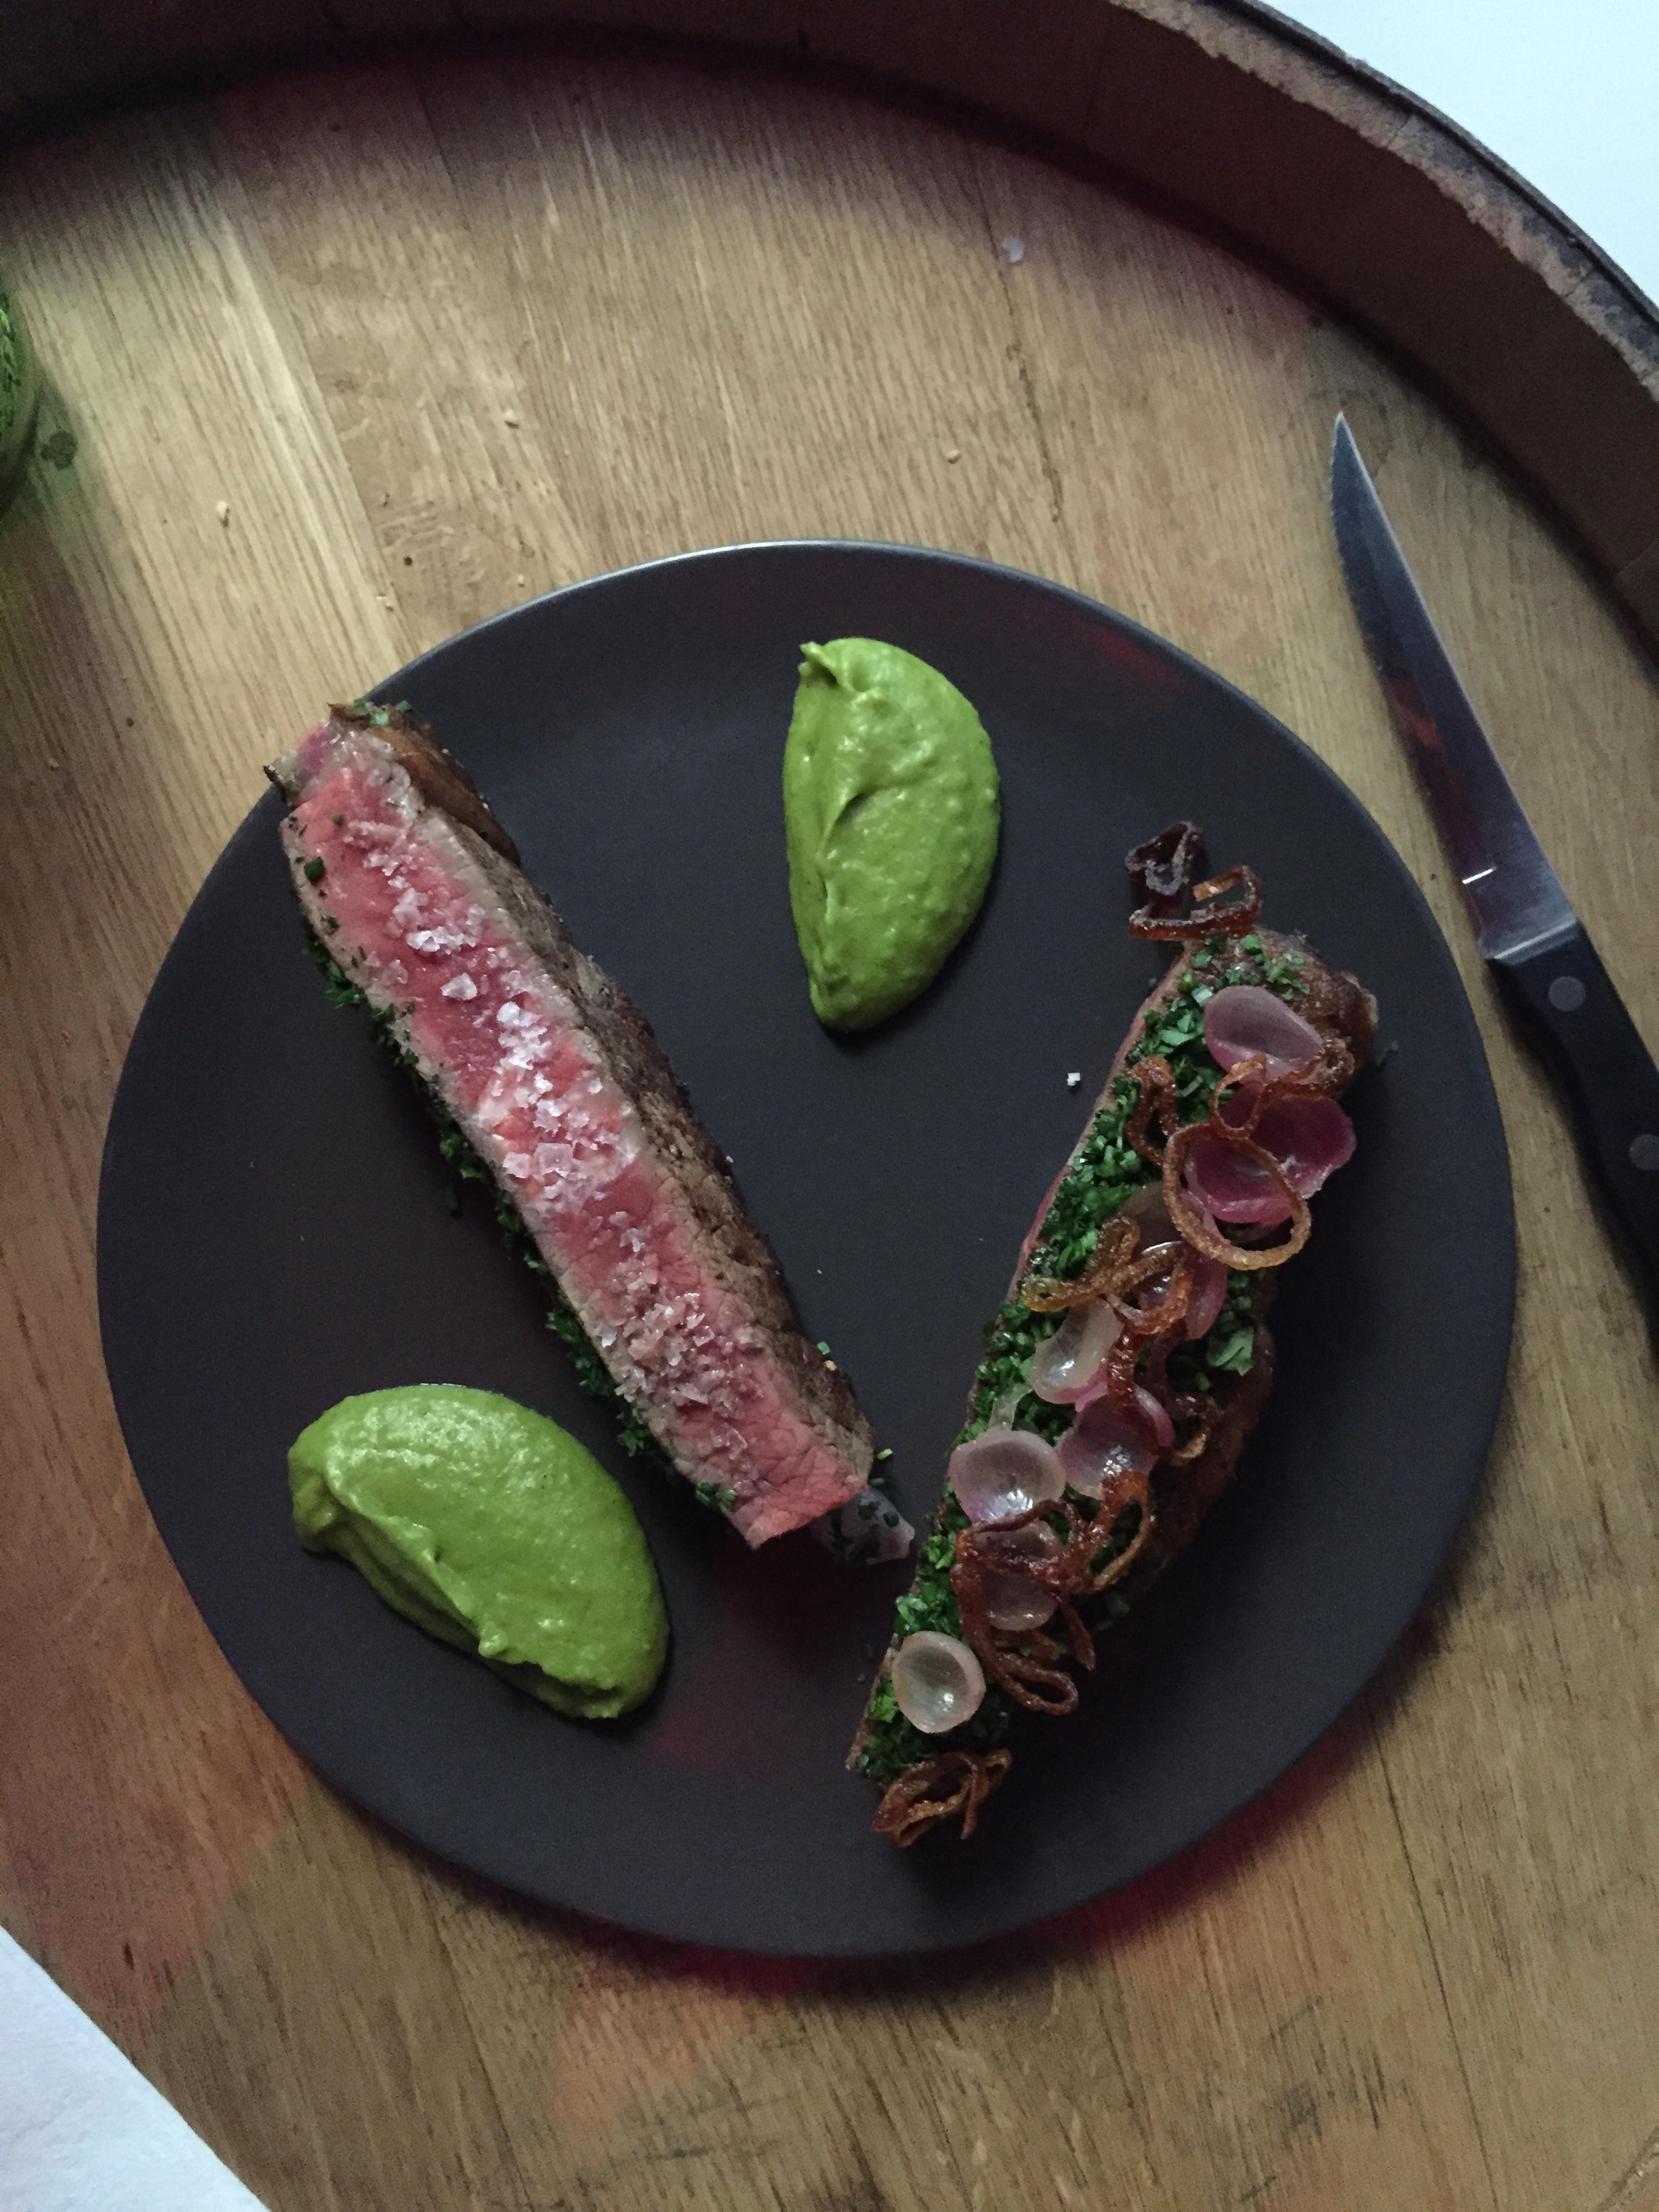 The NY Strip served with a potato spinach puree.